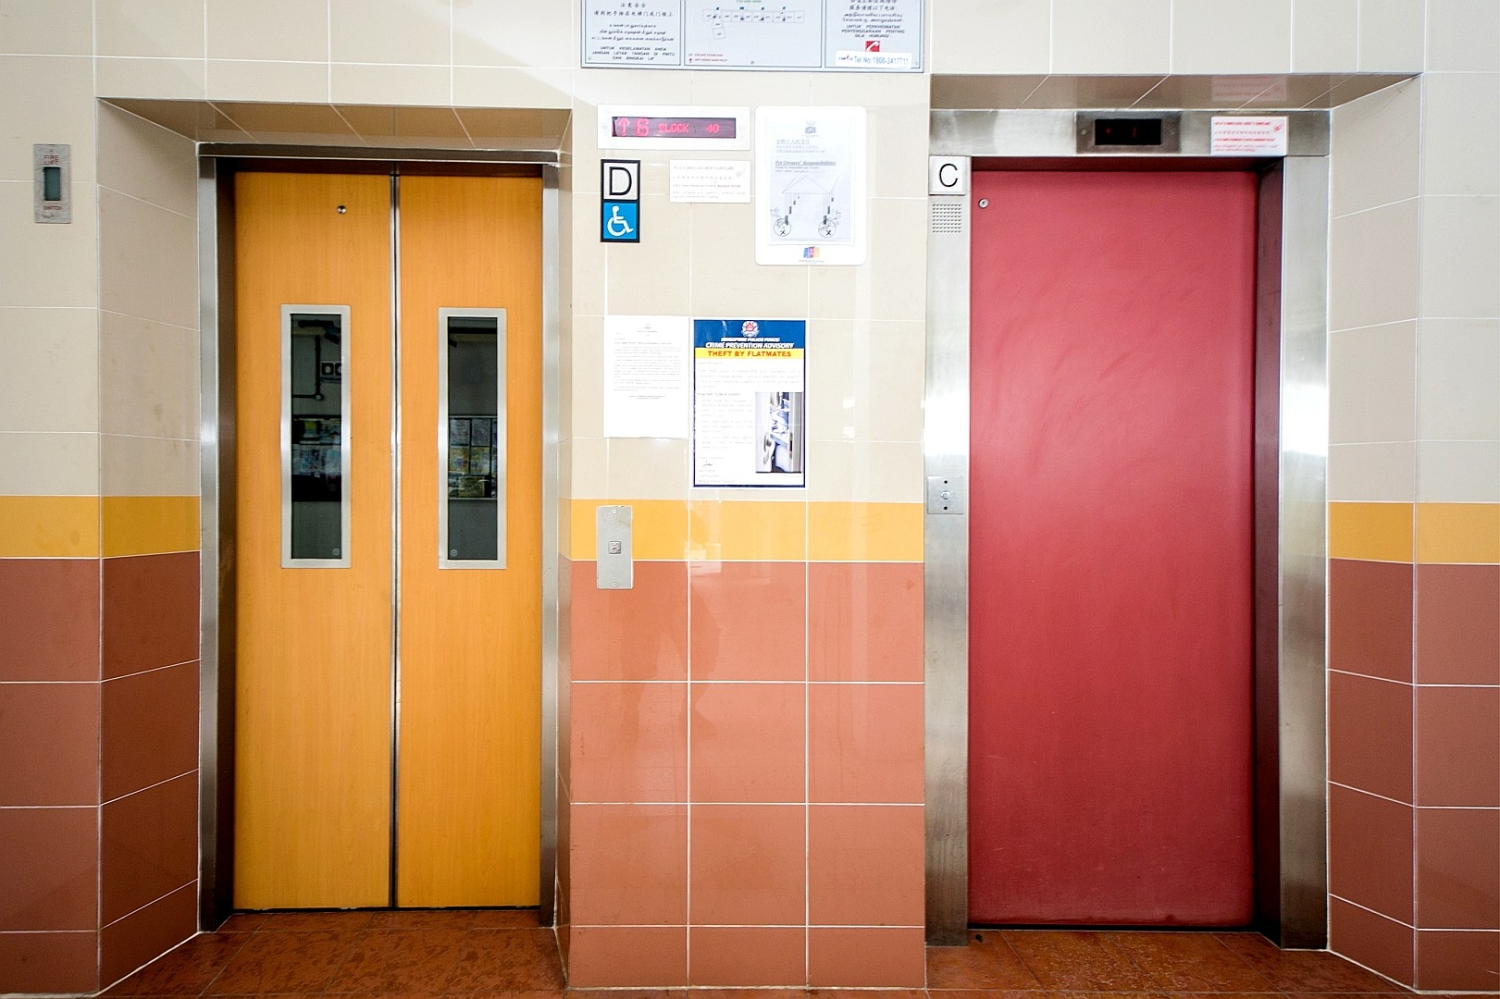 Funds given for maintenance of lifts